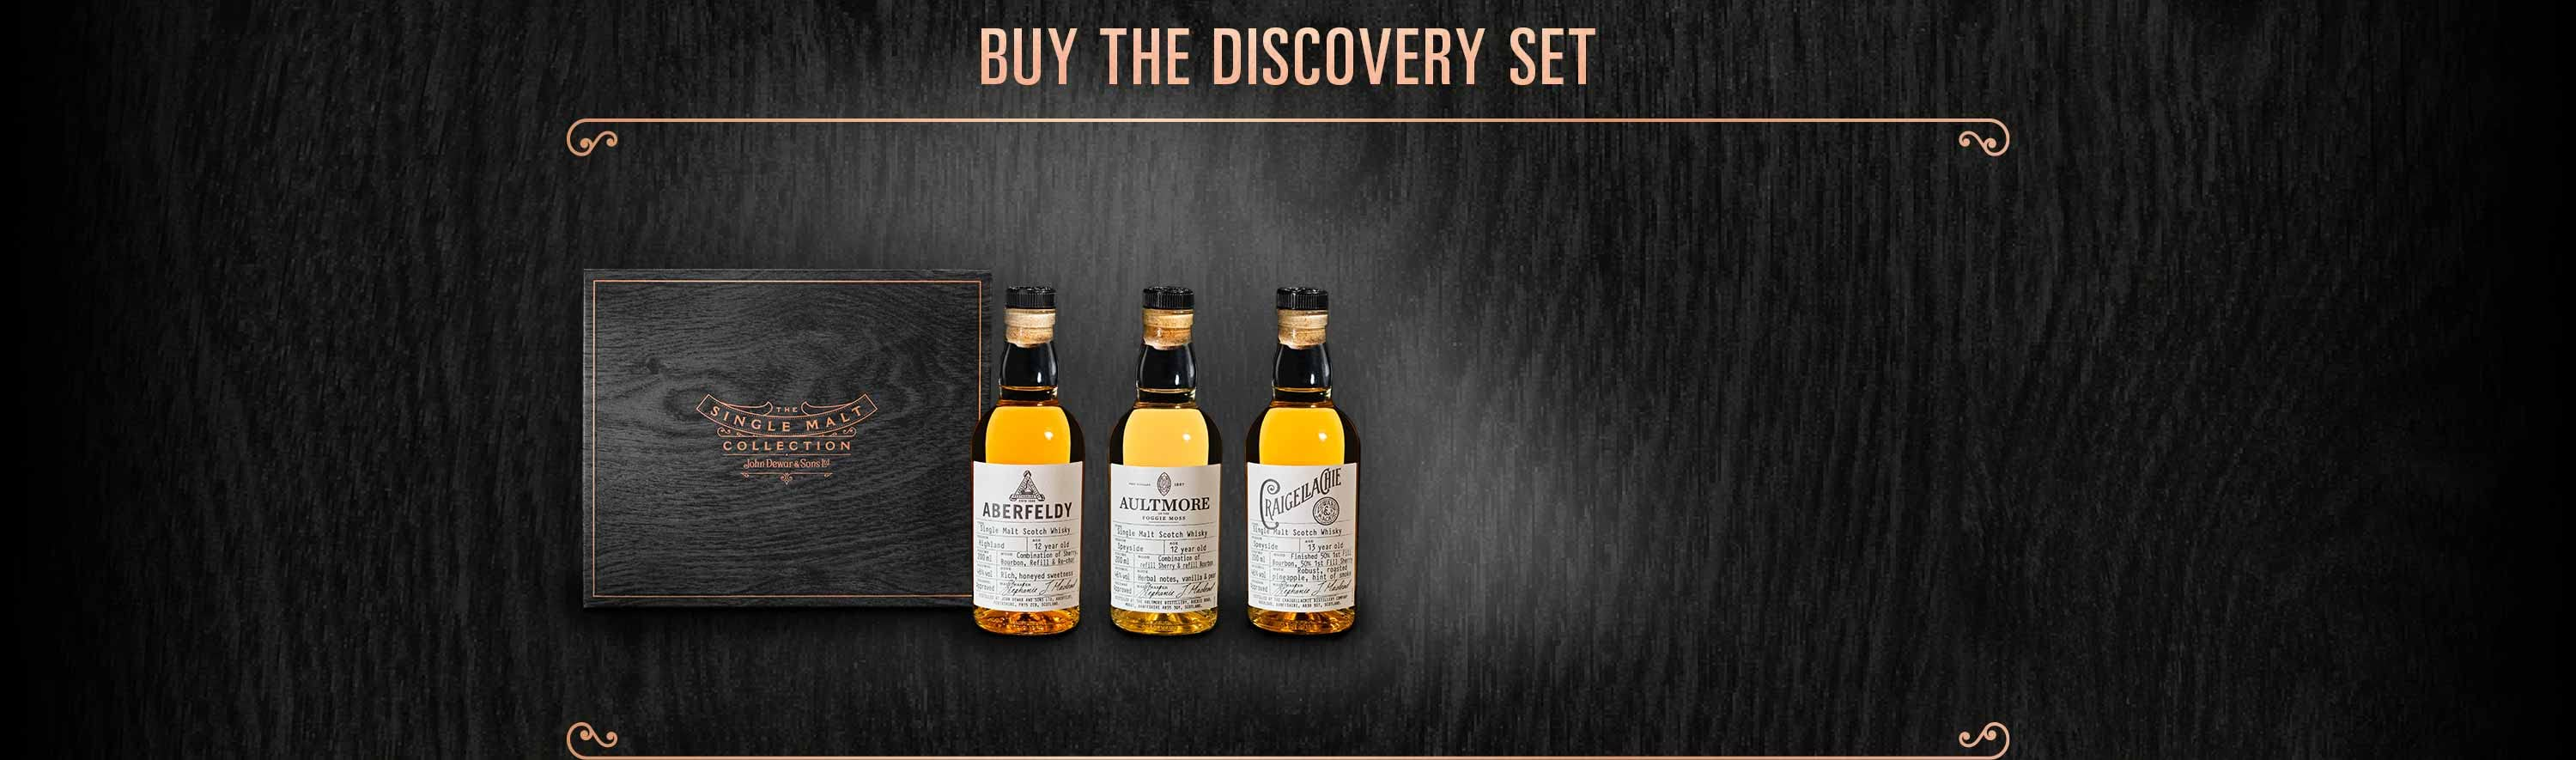 Buy the Discovery Set